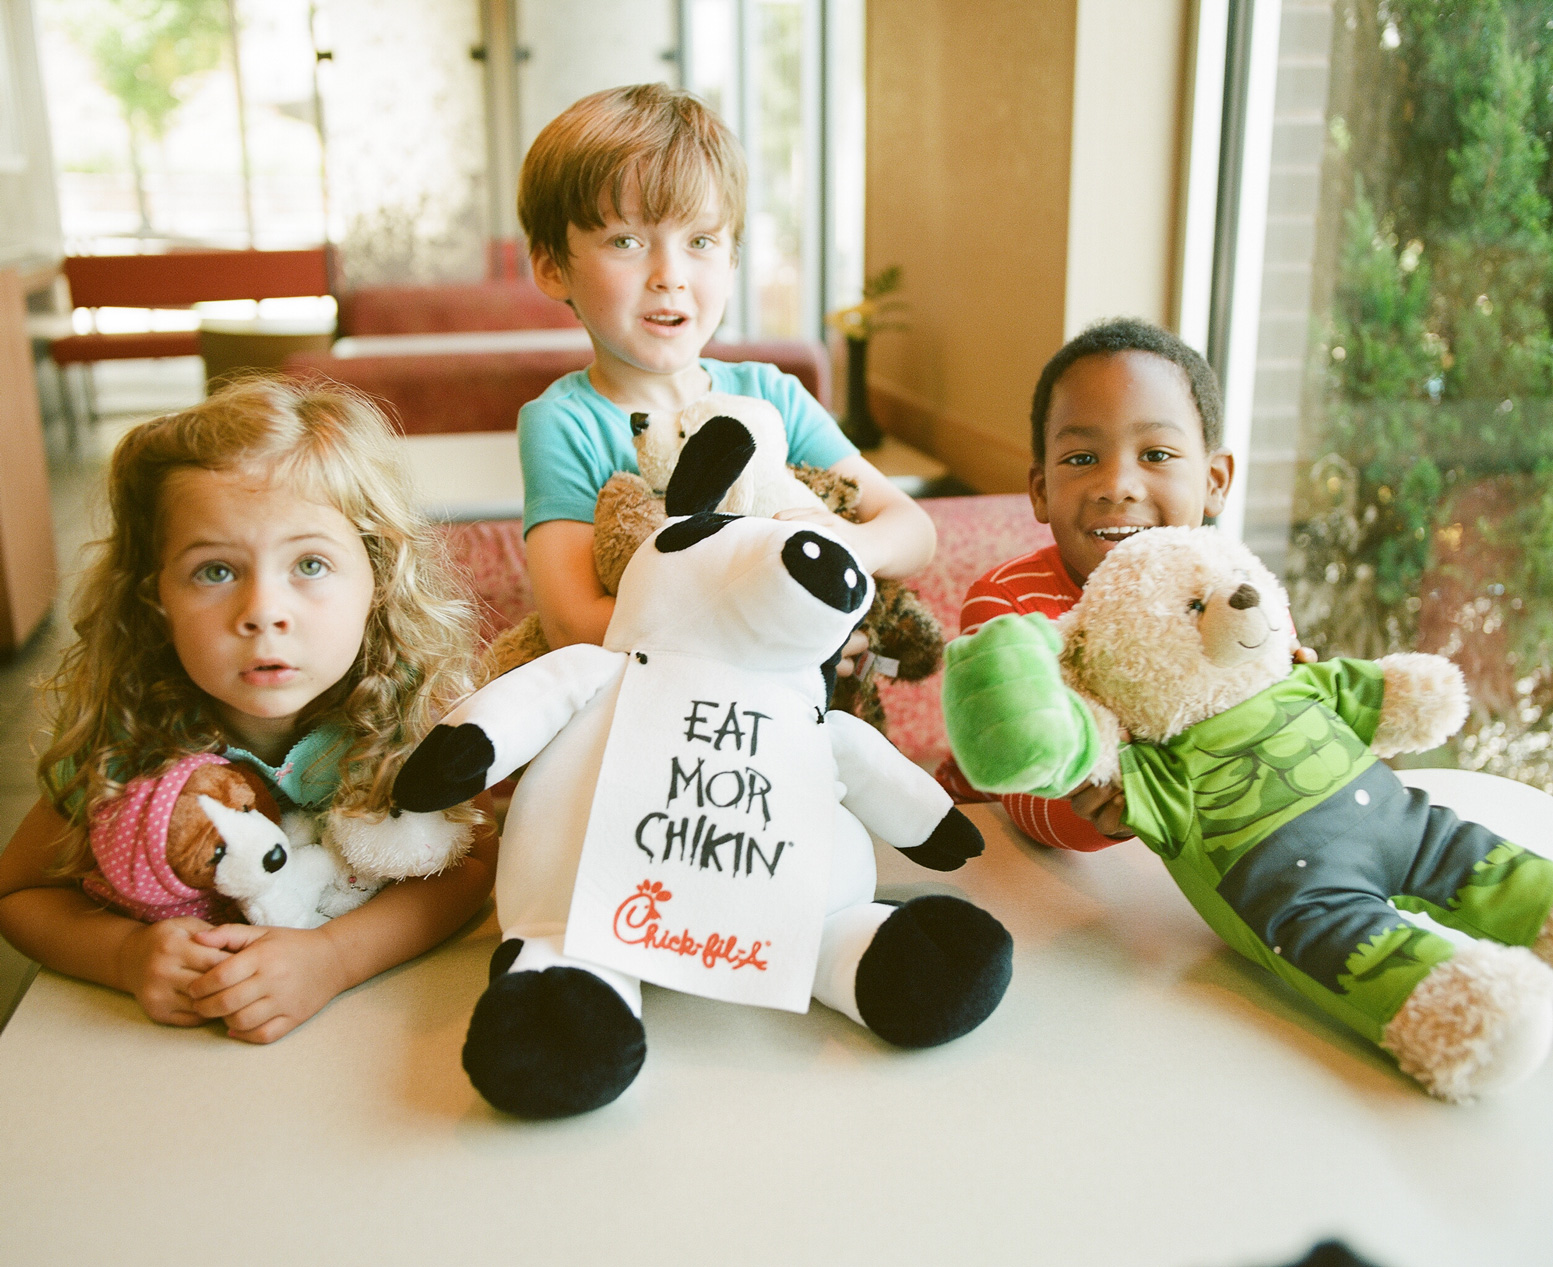 Goodnight Cow A Sleepover For Stuffed Animals Chick Fil A